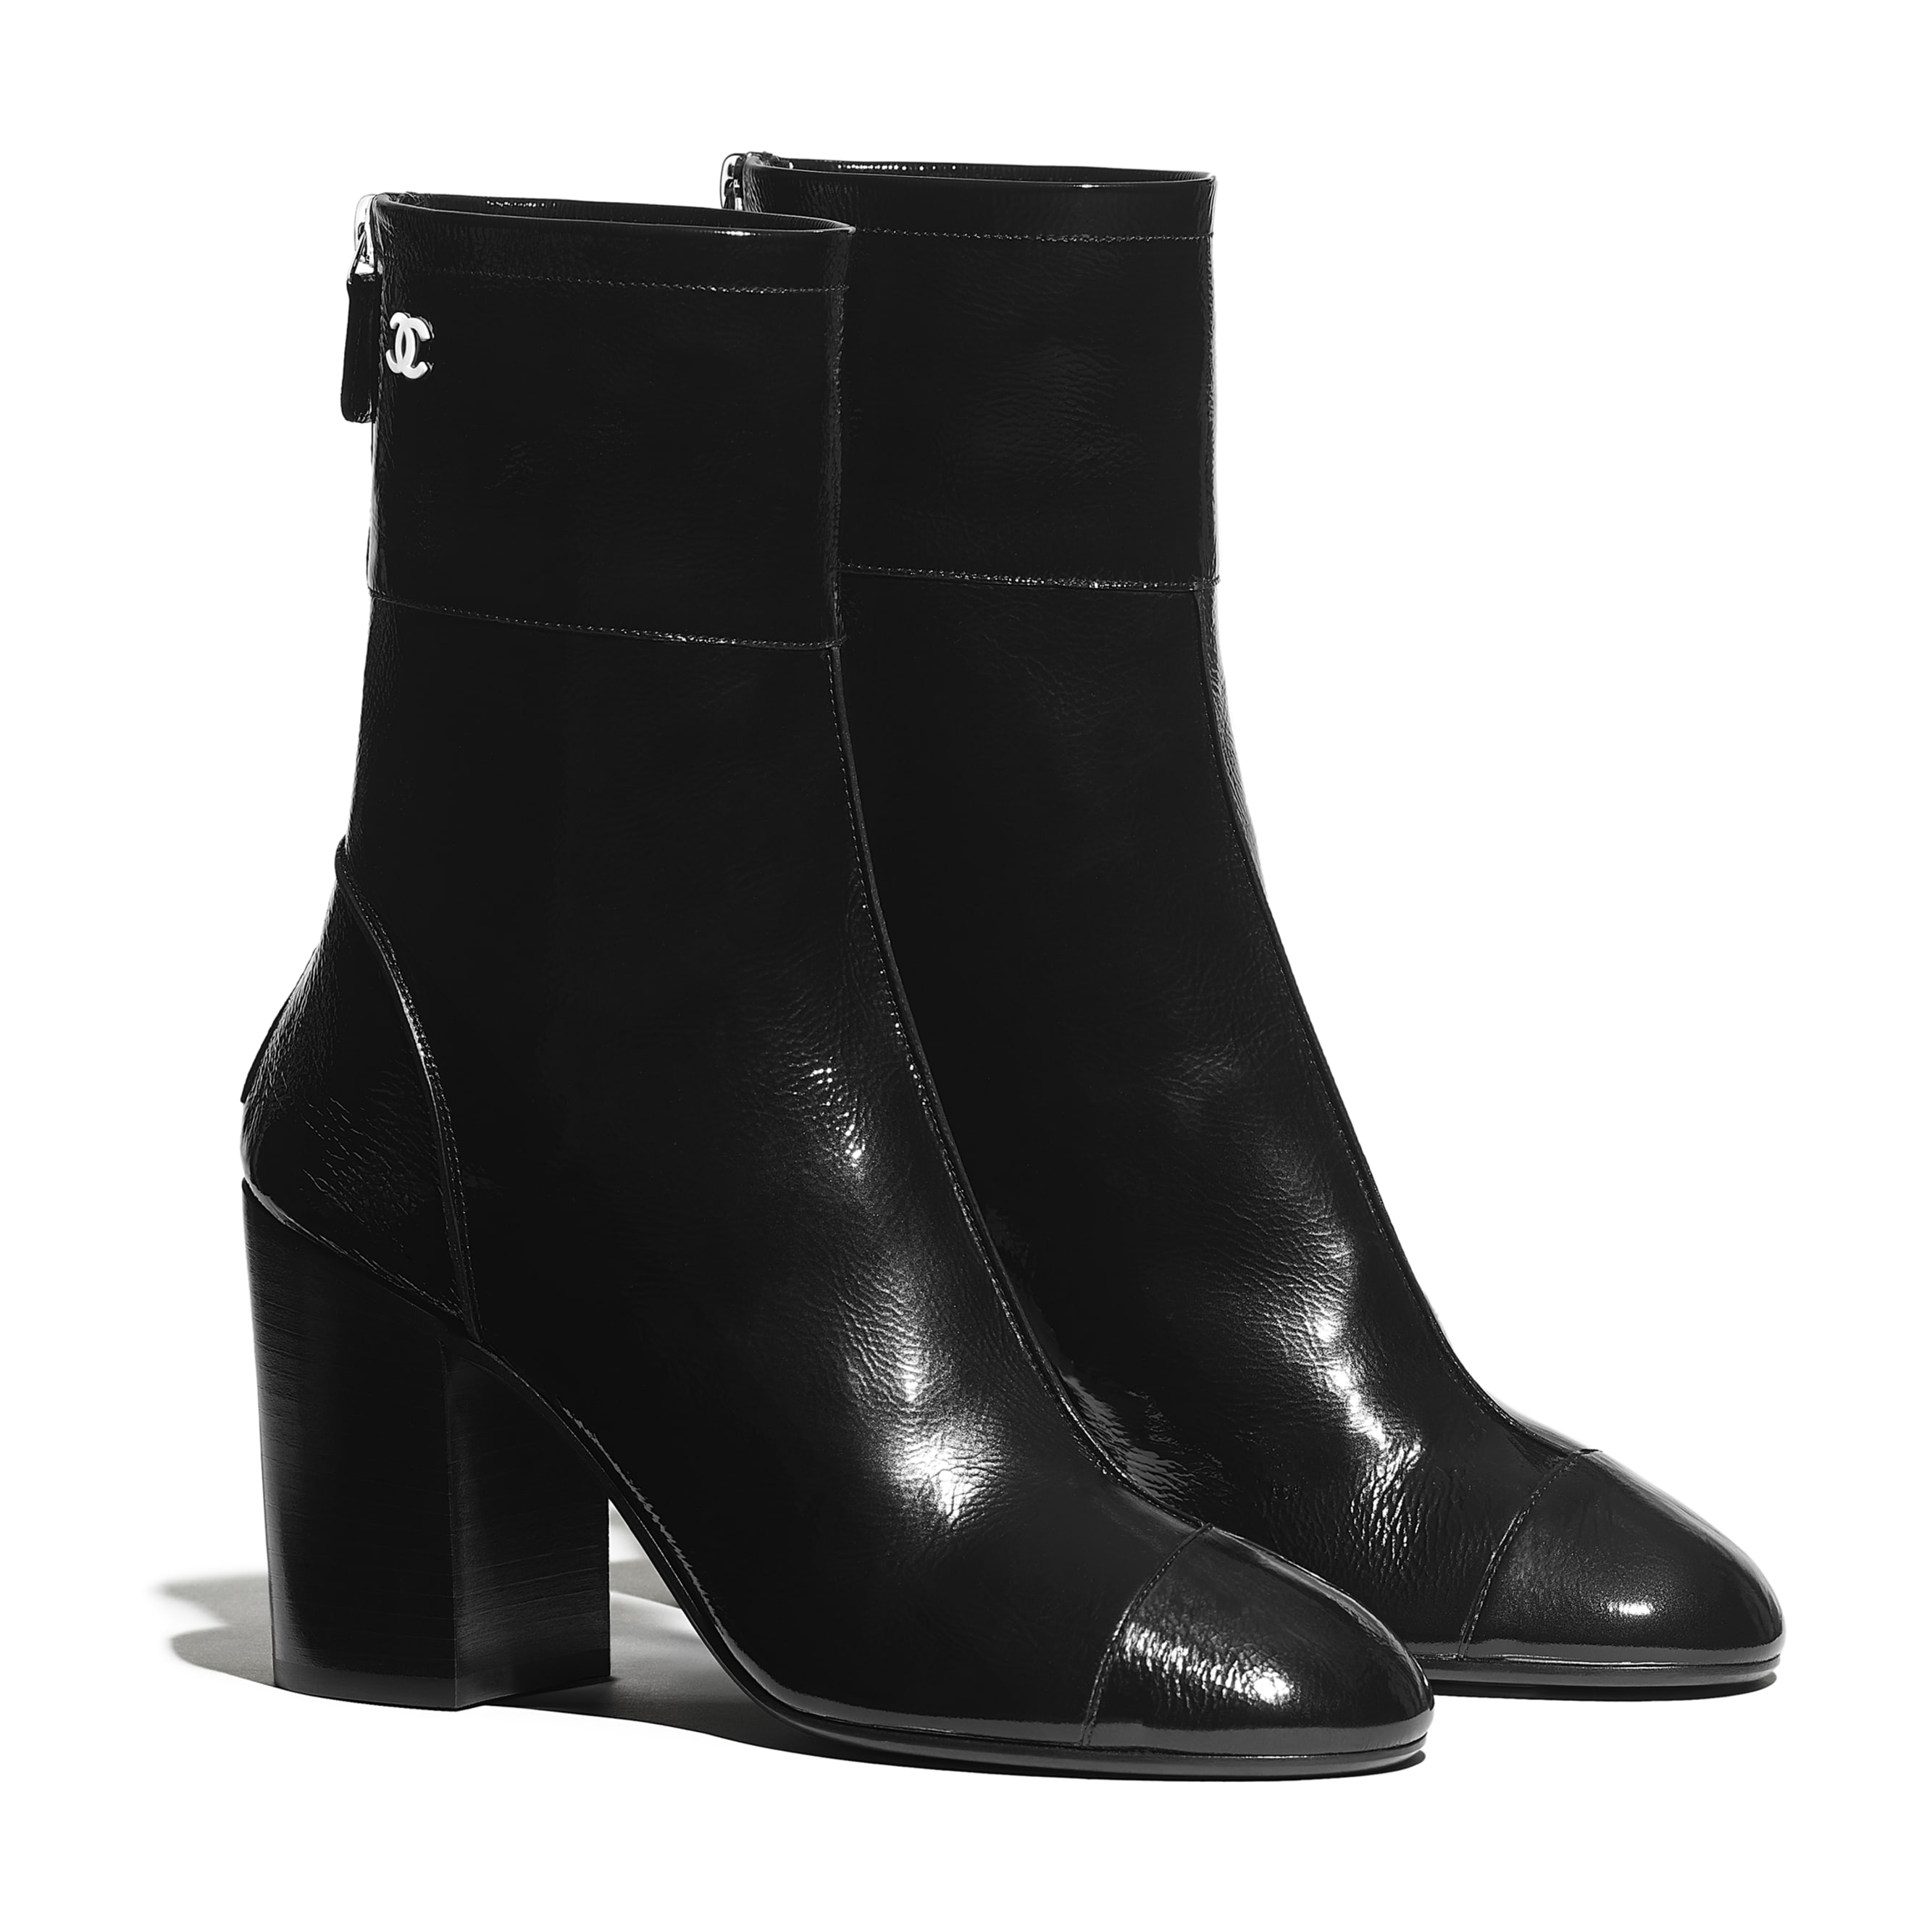 Ankle Boots - Black - Shiny Crumpled Calfskin - CHANEL - Alternative view - see standard sized version